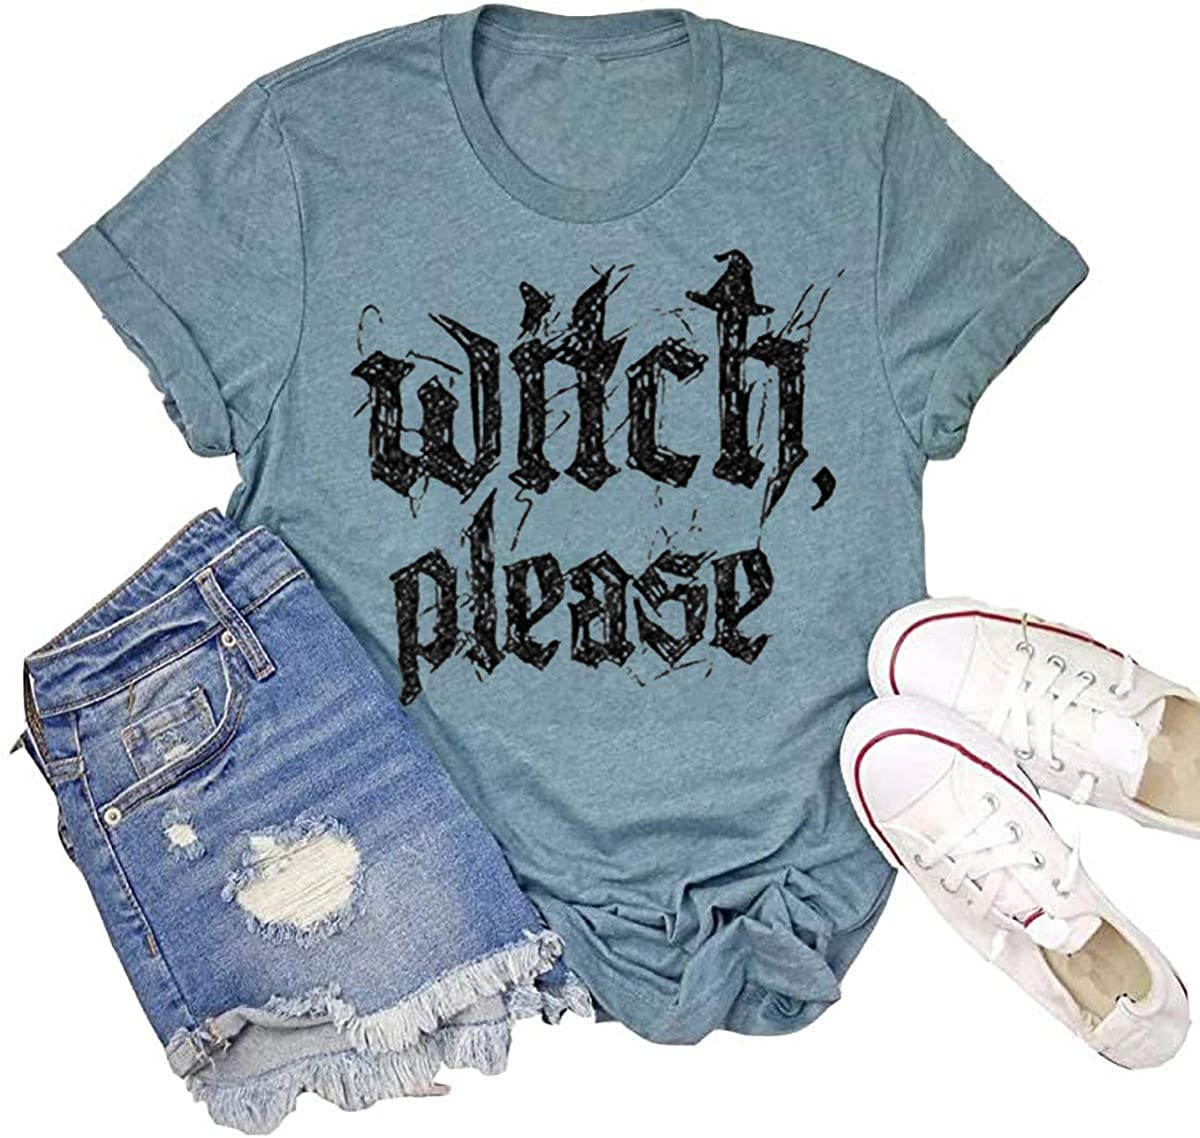 kfulemai Womens Halloween T-Shirt Funny Short Sleeve Witch Please Graphic Tees Tops